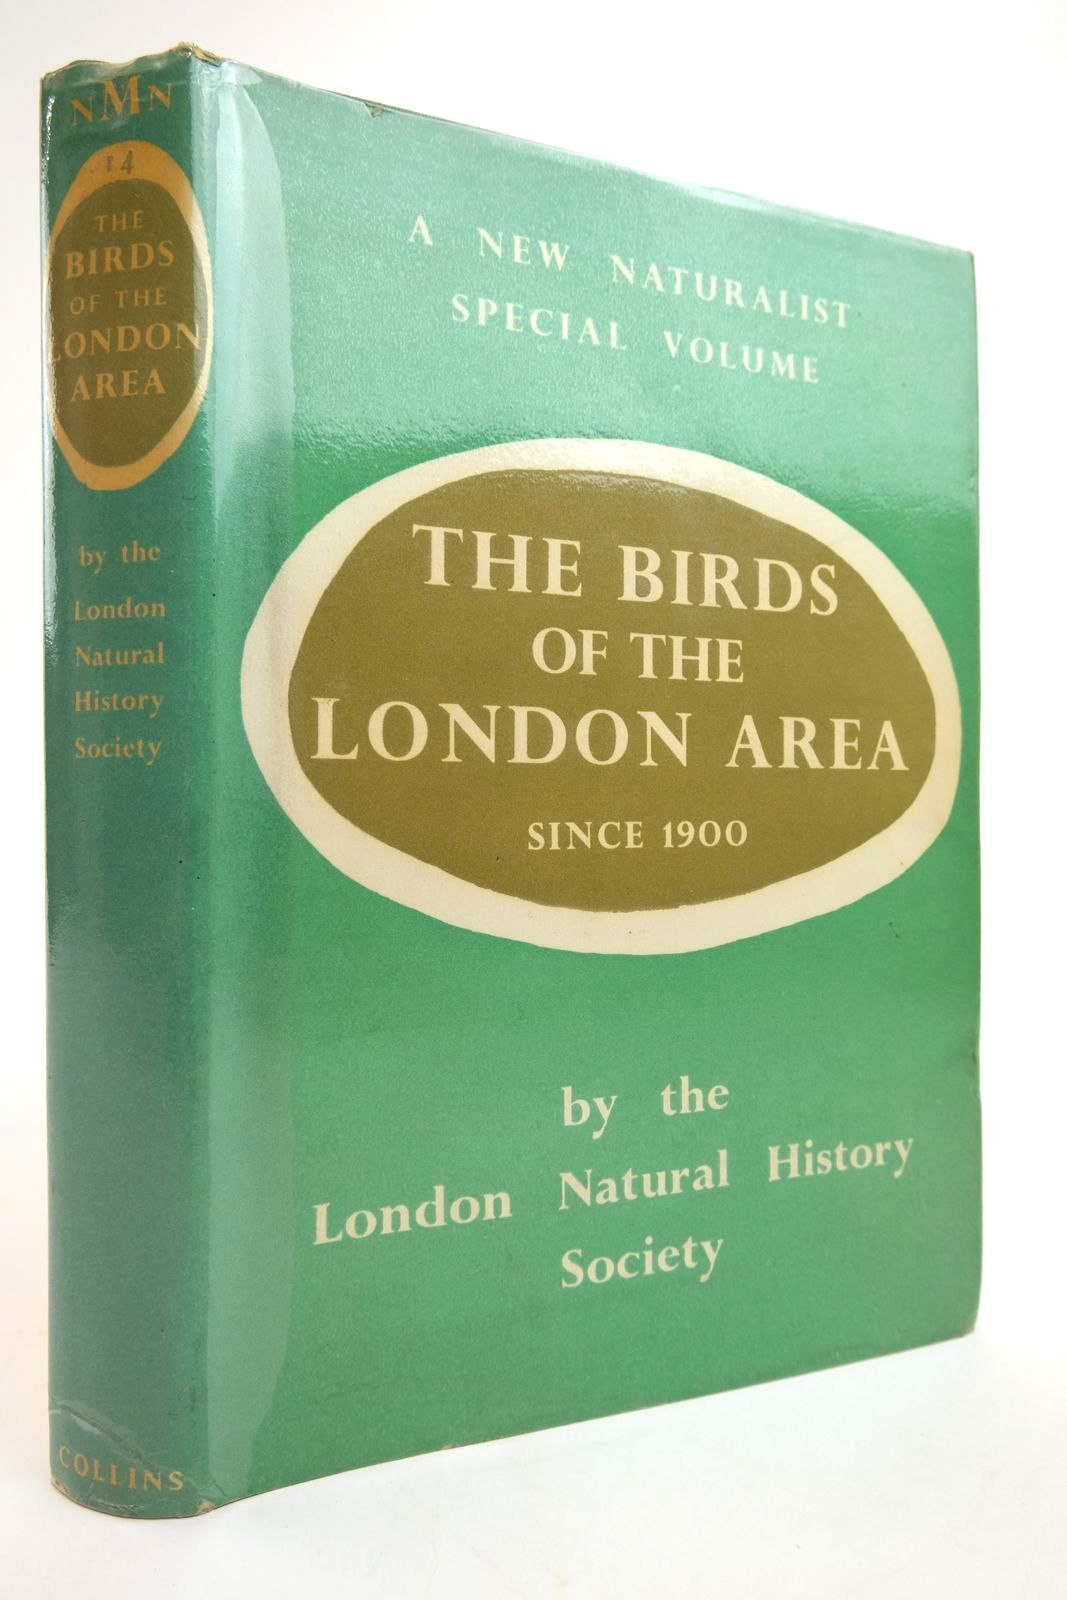 Photo of THE BIRDS OF THE LONDON AREA SINCE 1900 (NMN 14)- Stock Number: 2134992